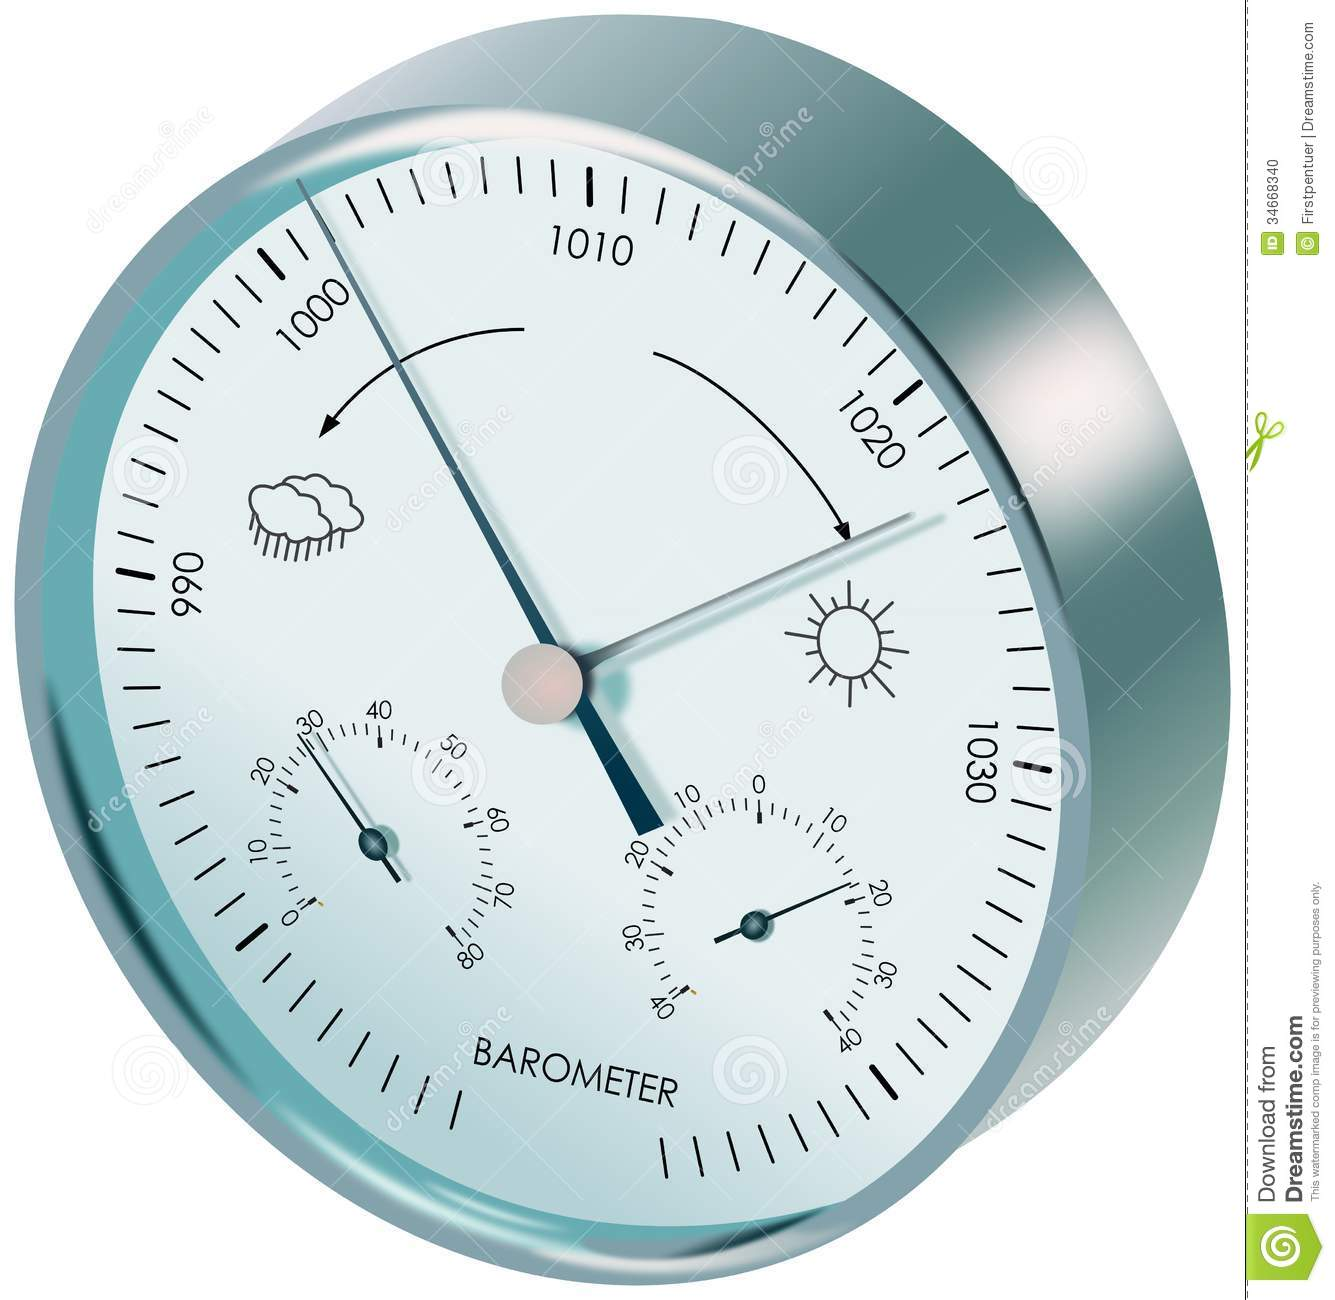 how to use a barometer to measure air pressure